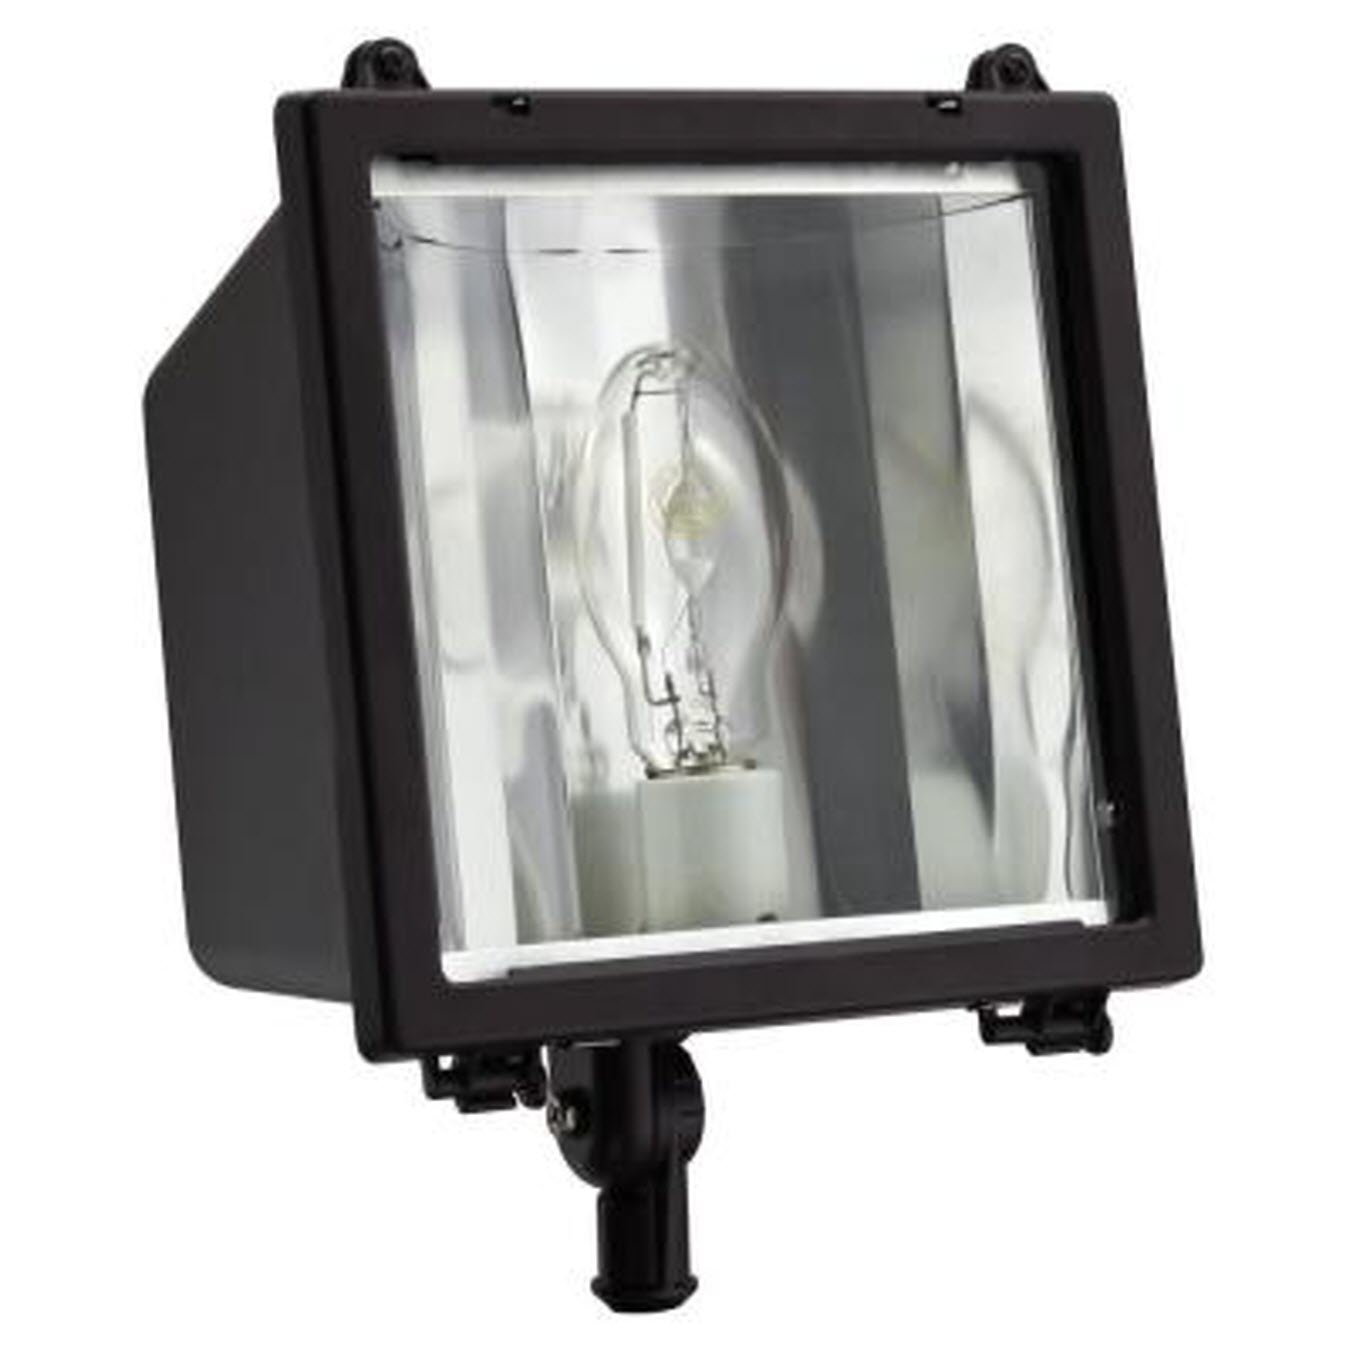 Metal Halide Lights Home Depot: 1000w Metal Halide Bulbs Home Depot